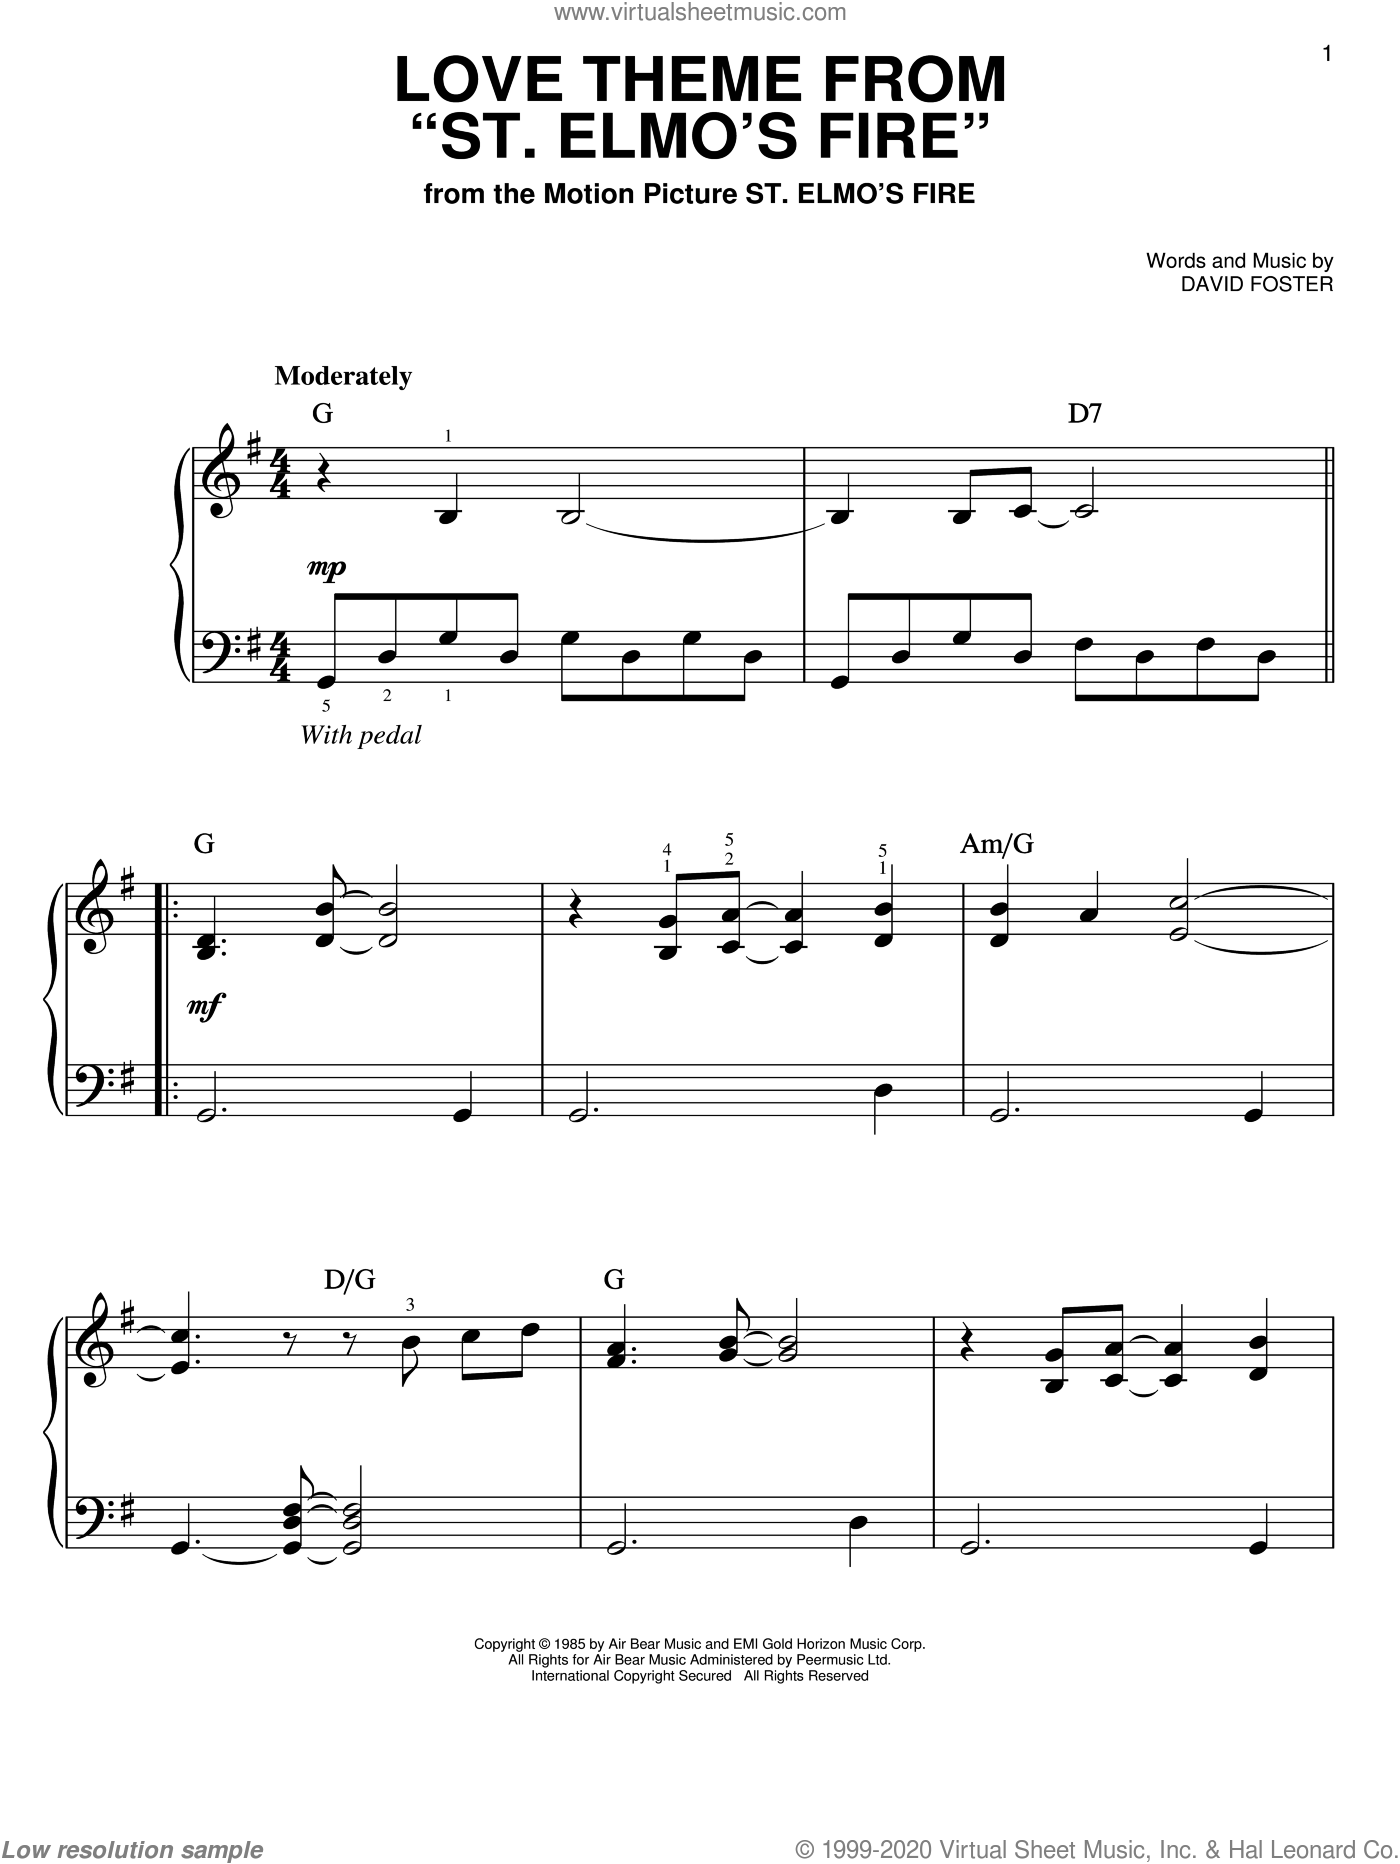 Love Theme From St. Elmo's Fire sheet music for piano solo by David Foster. Score Image Preview.